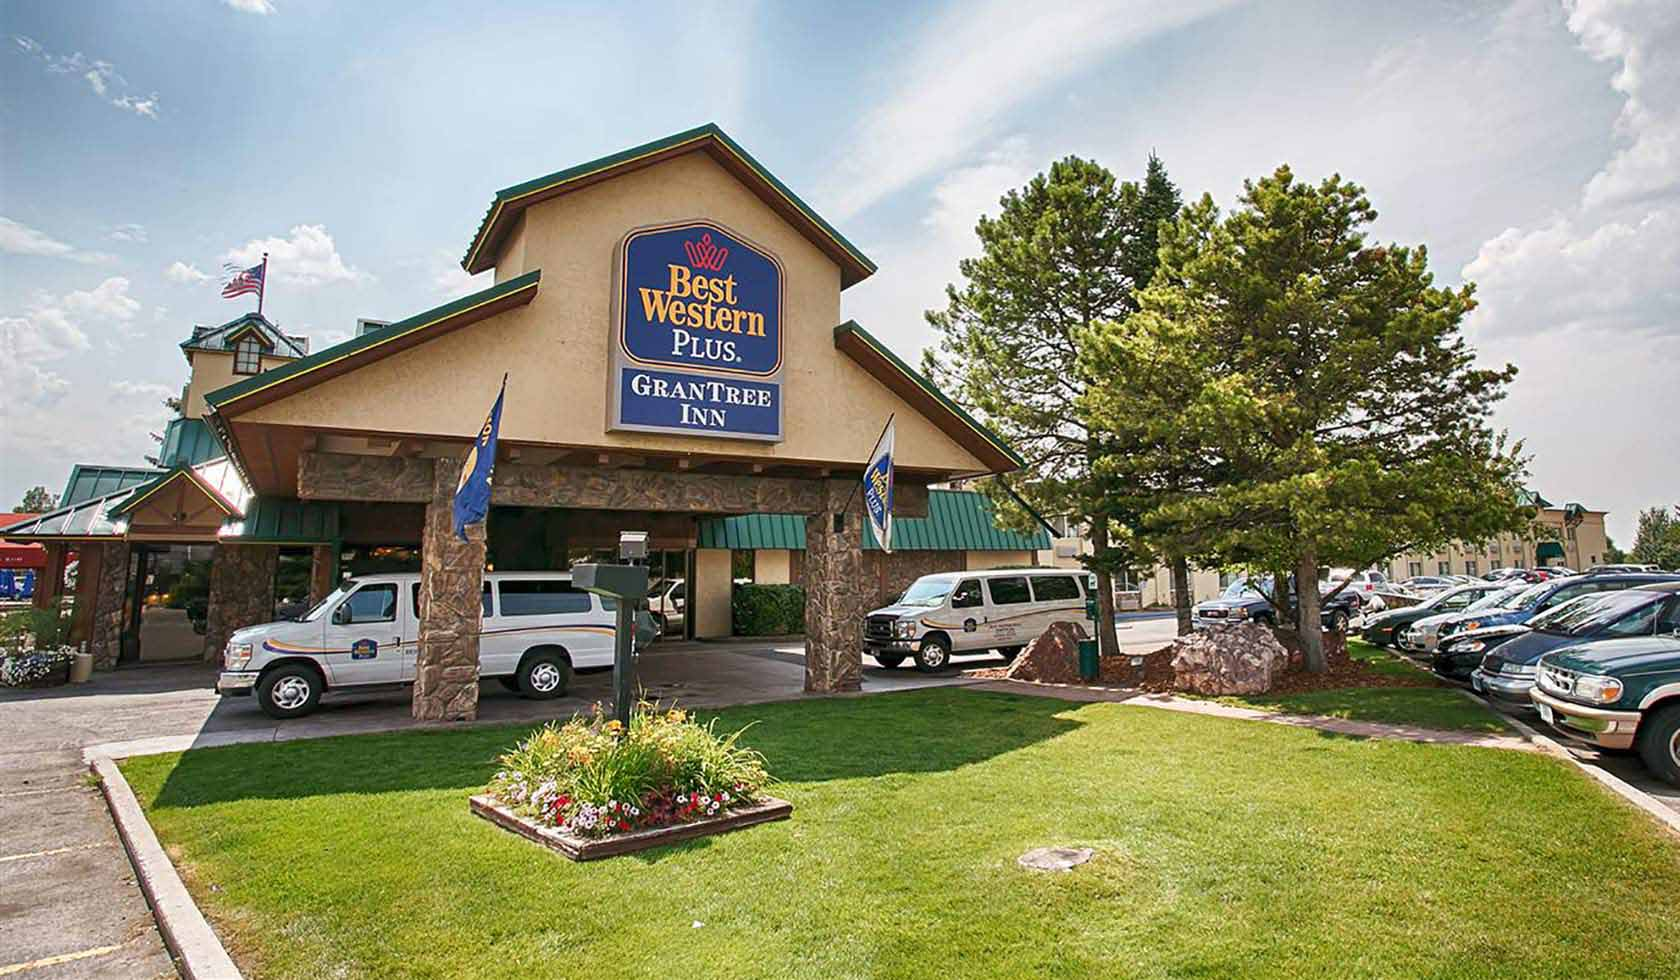 Best Western GranTree Inn profile image